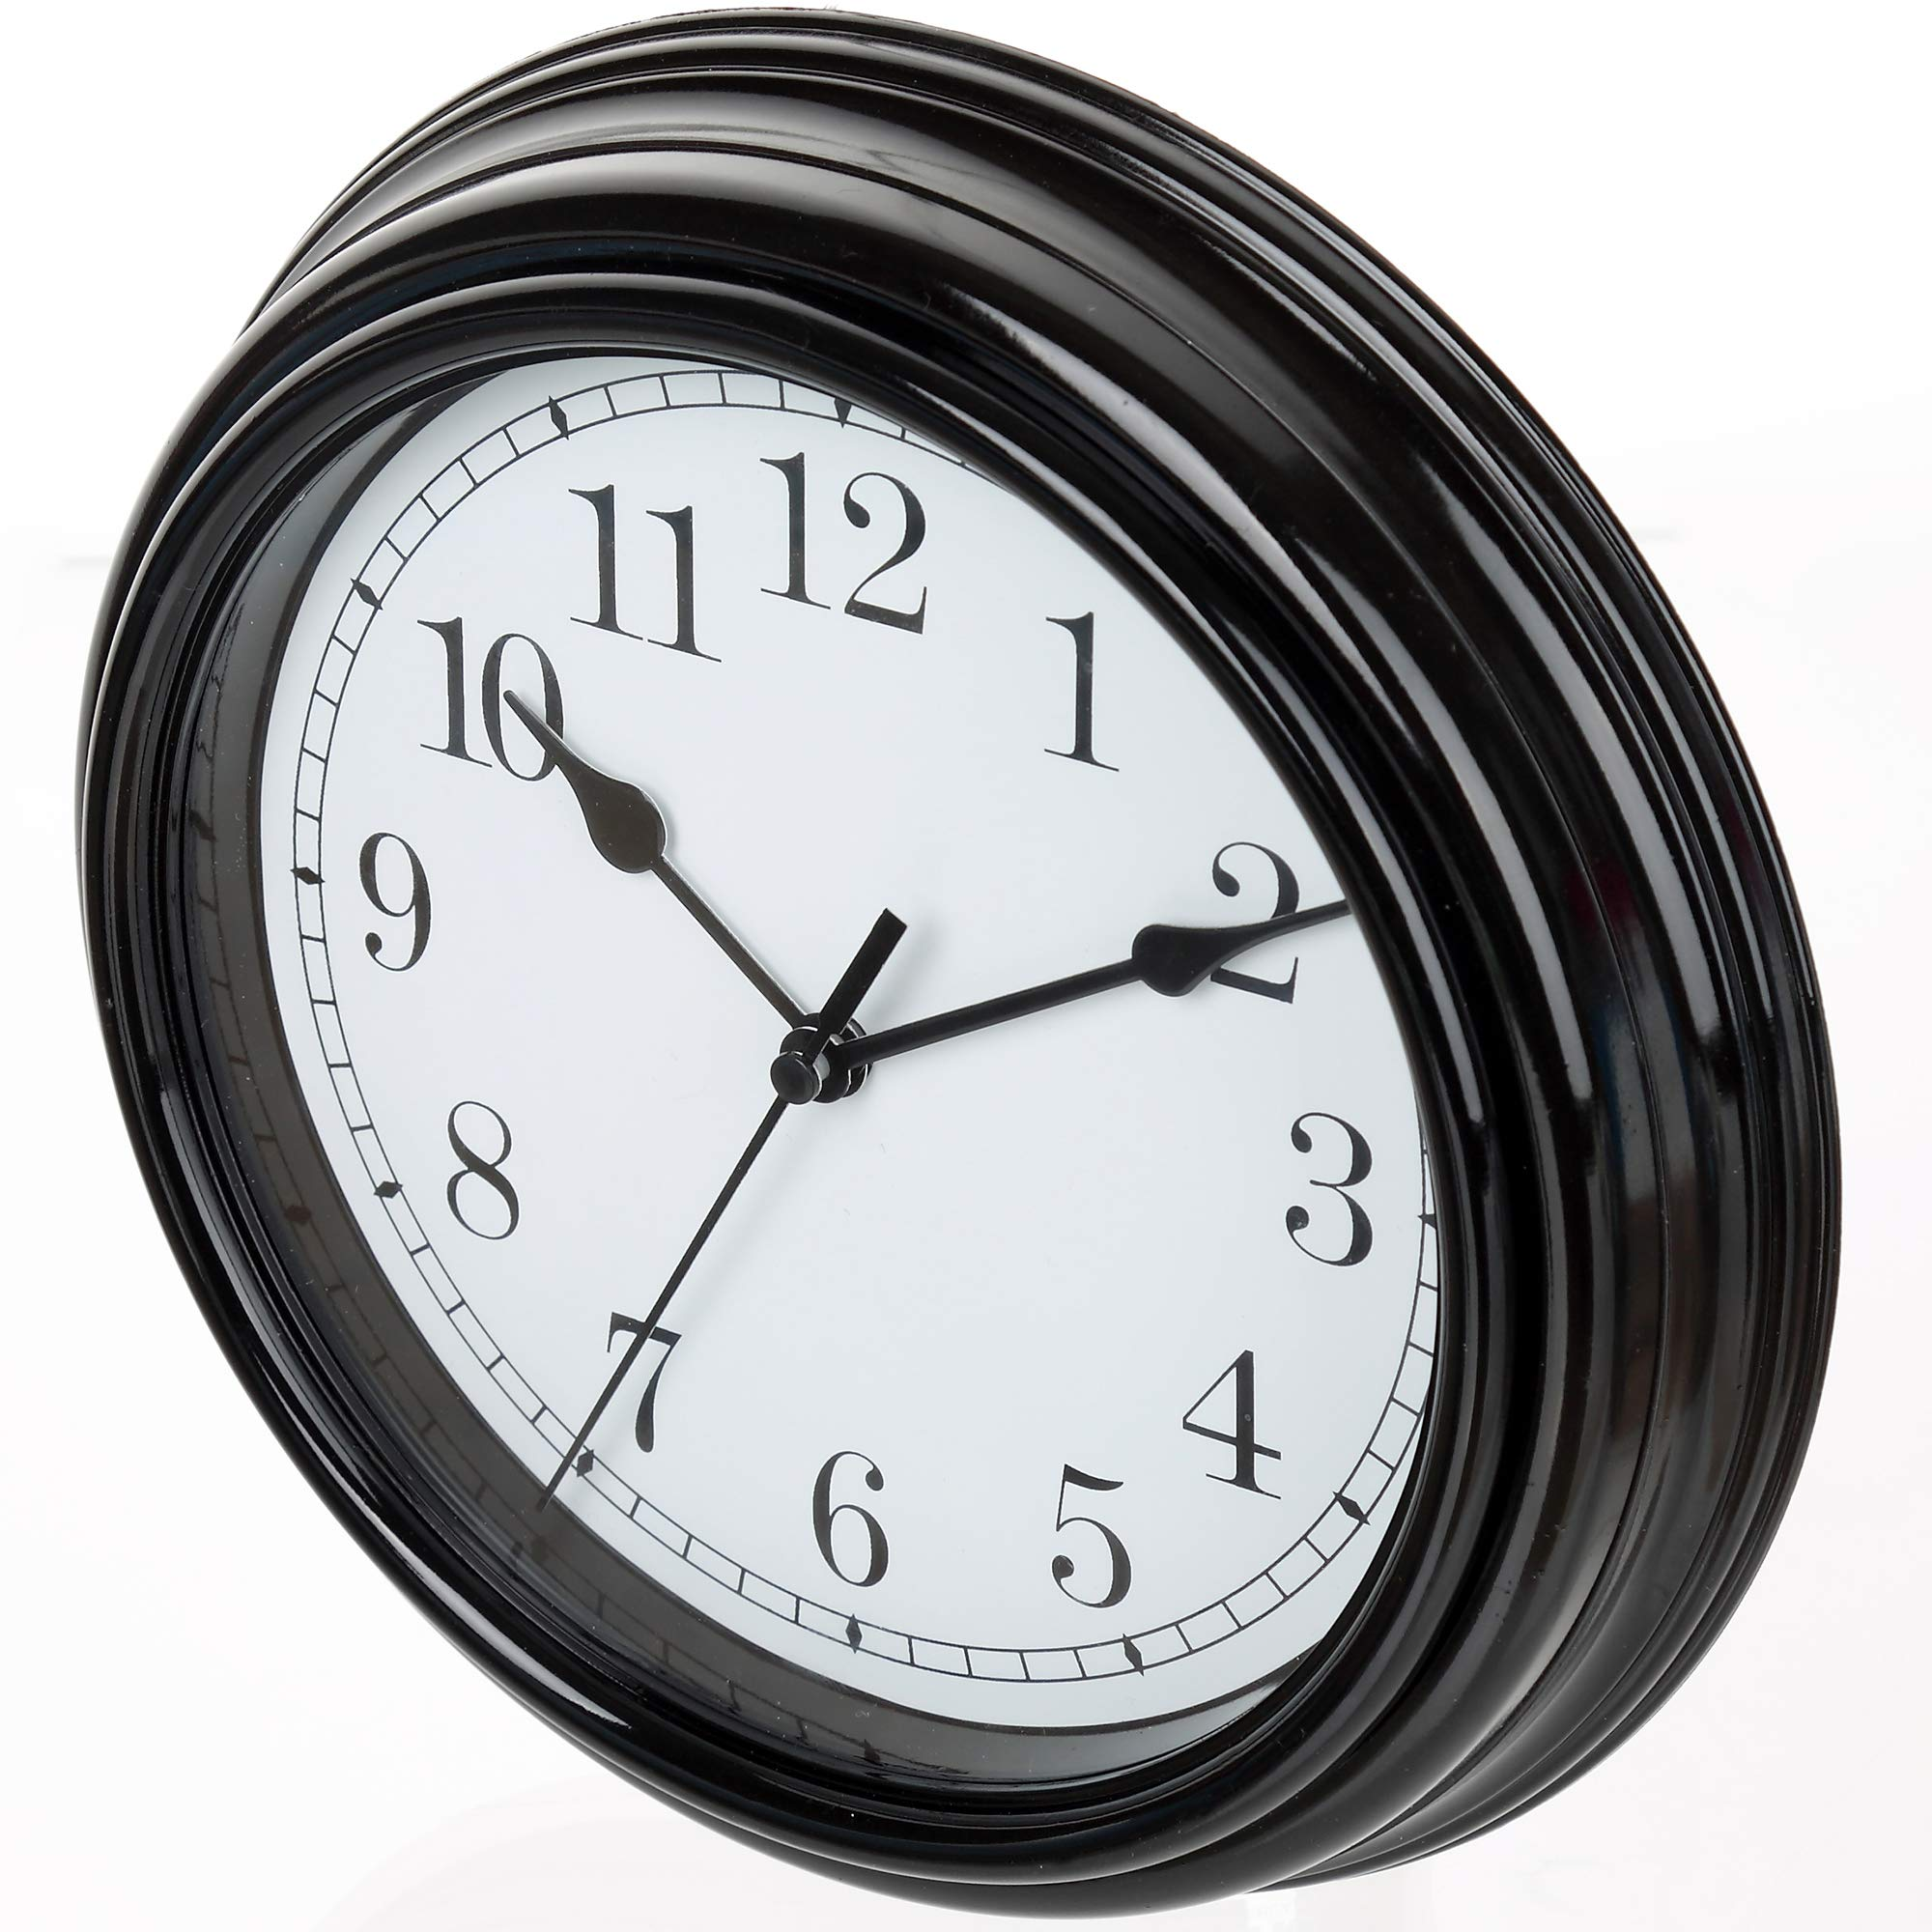 Tiords Small Analog Quarts Battery Bedroom Office Kitchen Farmhouse Wall Clocks Decorative For Living Room Decor Battery Operated Walls Black 8 5 Inch Buy Online In Albania At Desertcart Productid 128472863